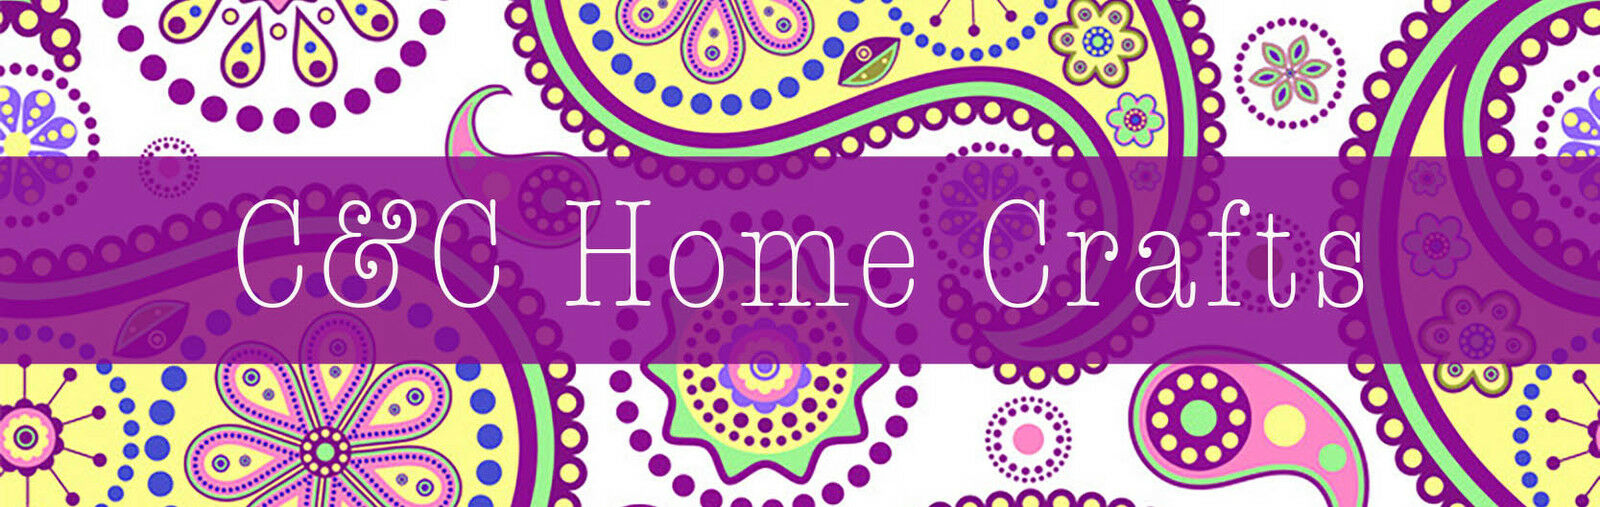 C & C Homecrafts